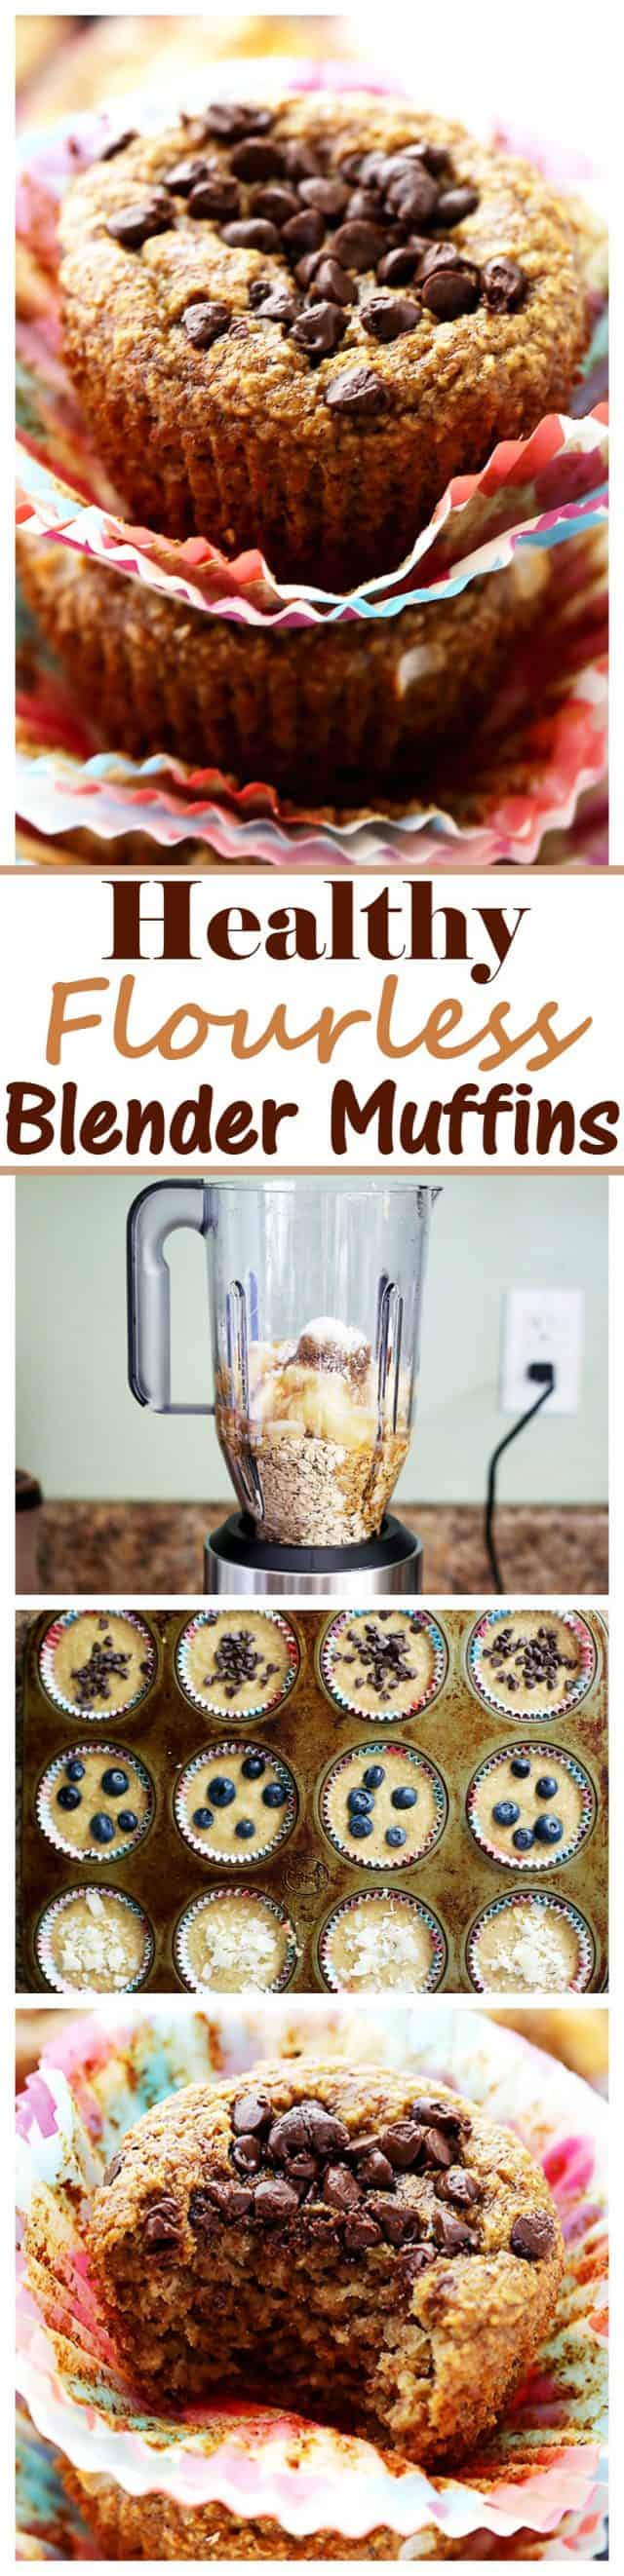 Healthy Flourless Blender Muffins - Super soft and healthy muffins packed with oats and bananas, and whipped up in the blender. SO delicious, you won't believe they are under 110 calories each!